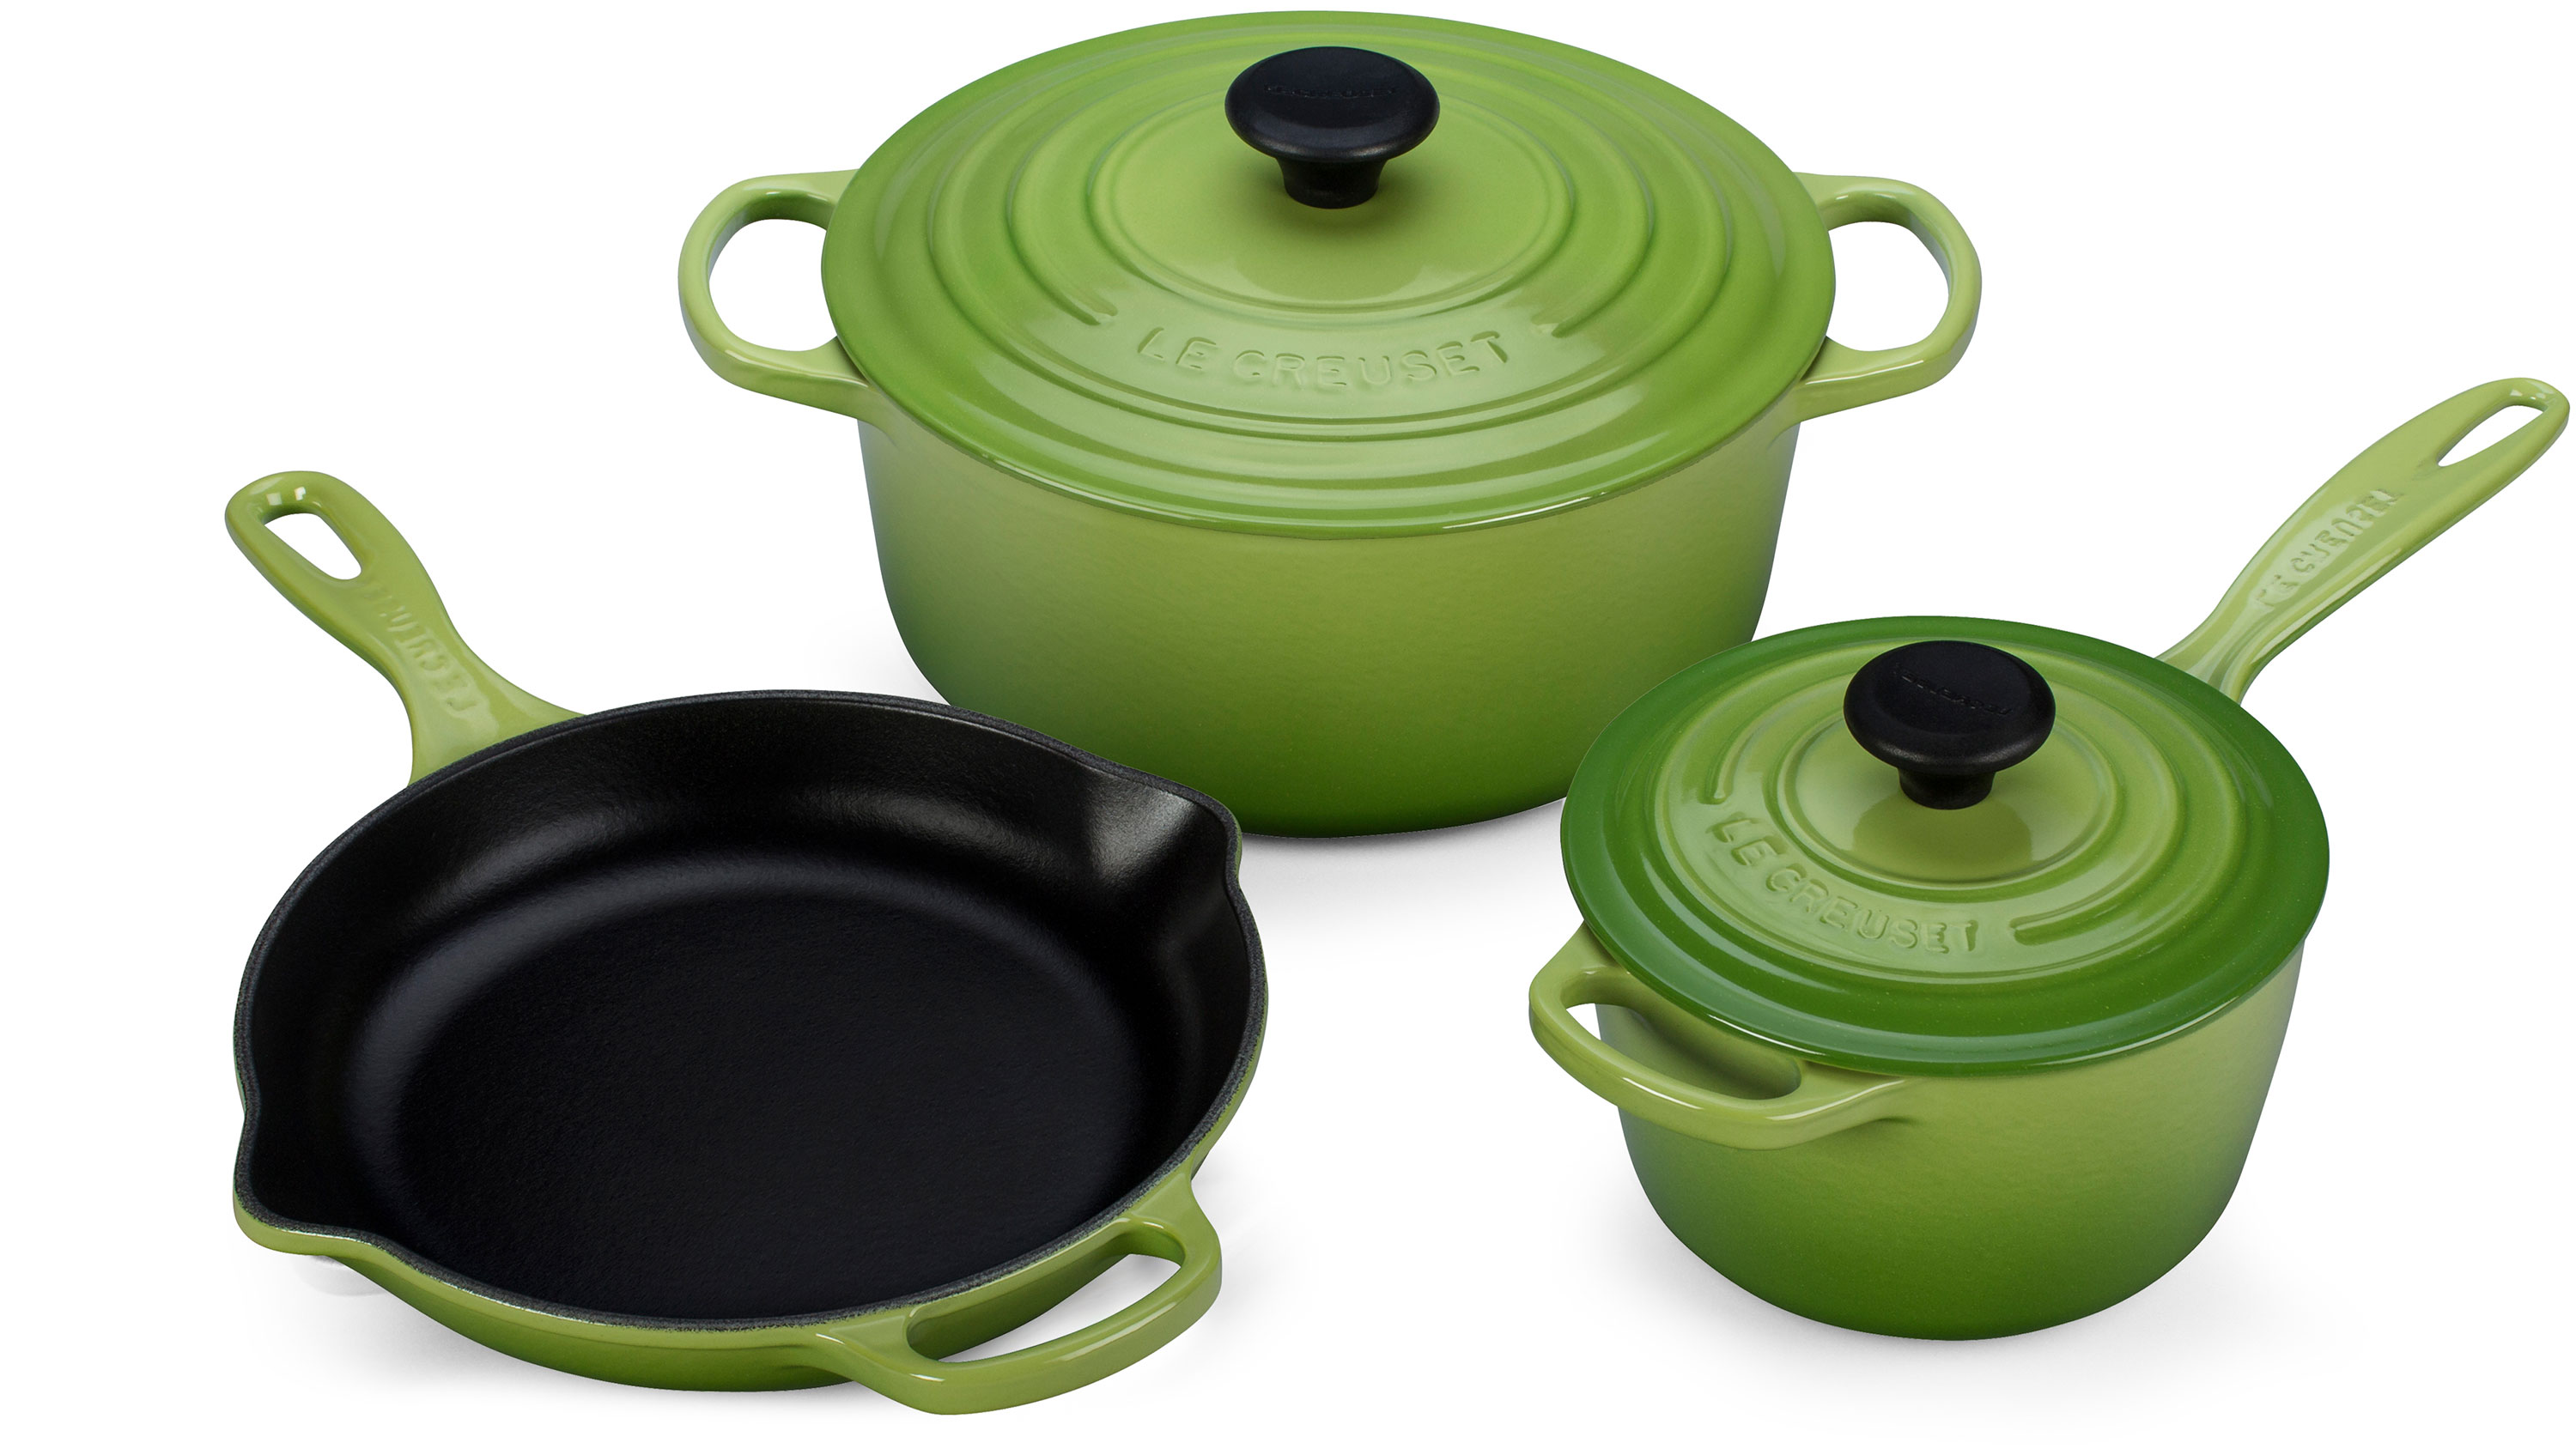 Le Creuset Signature Cast Iron 5 Piece Cookware Set Palm